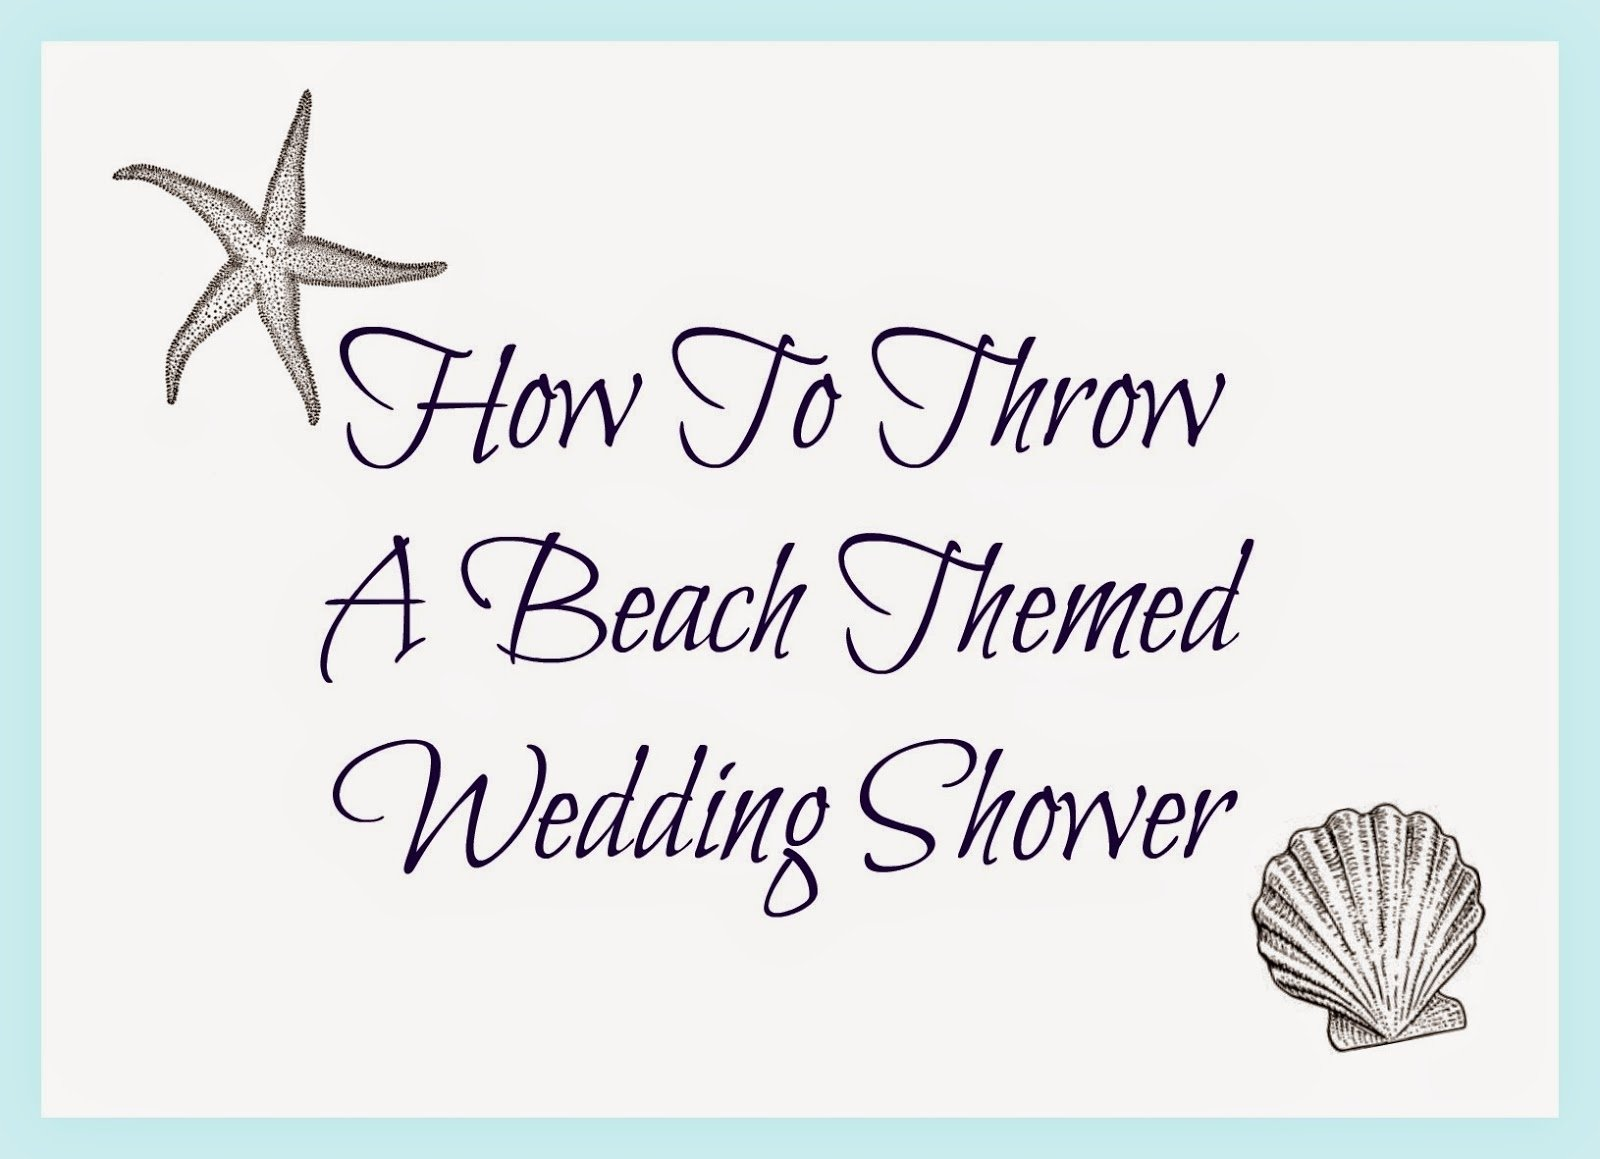 10 Great Beach Theme Bridal Shower Ideas my favorite things jesss beach themed wedding shower moh may